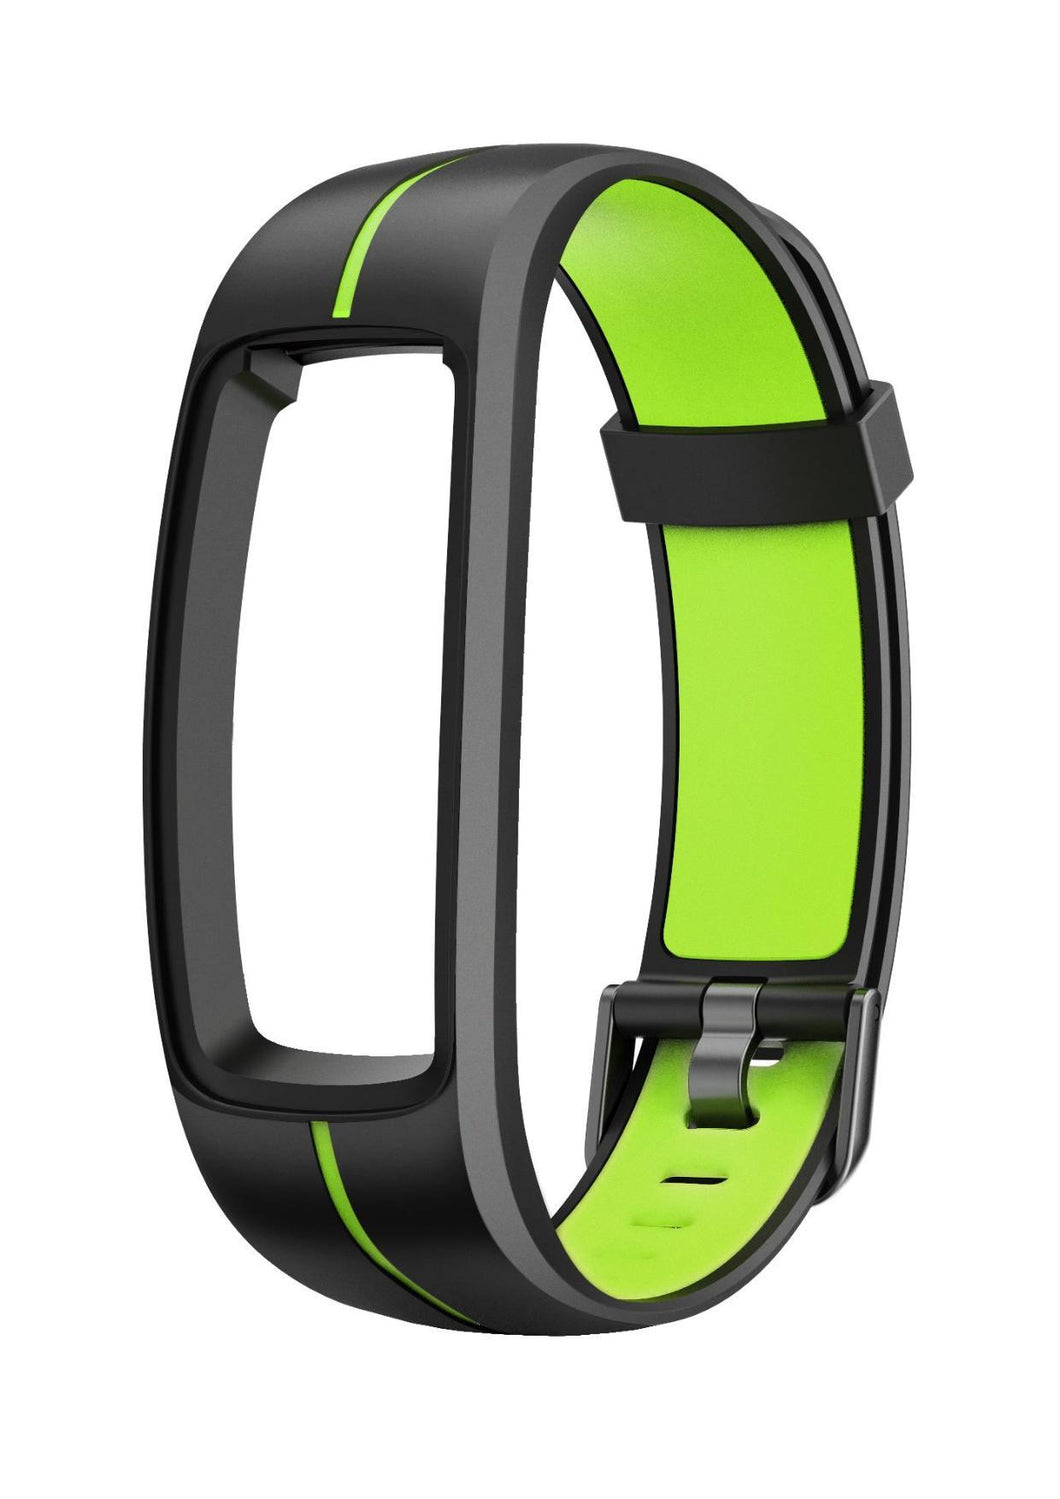 Stride - Interchangeable Smartwatch Band - Black / Green band for CAC-111-M12